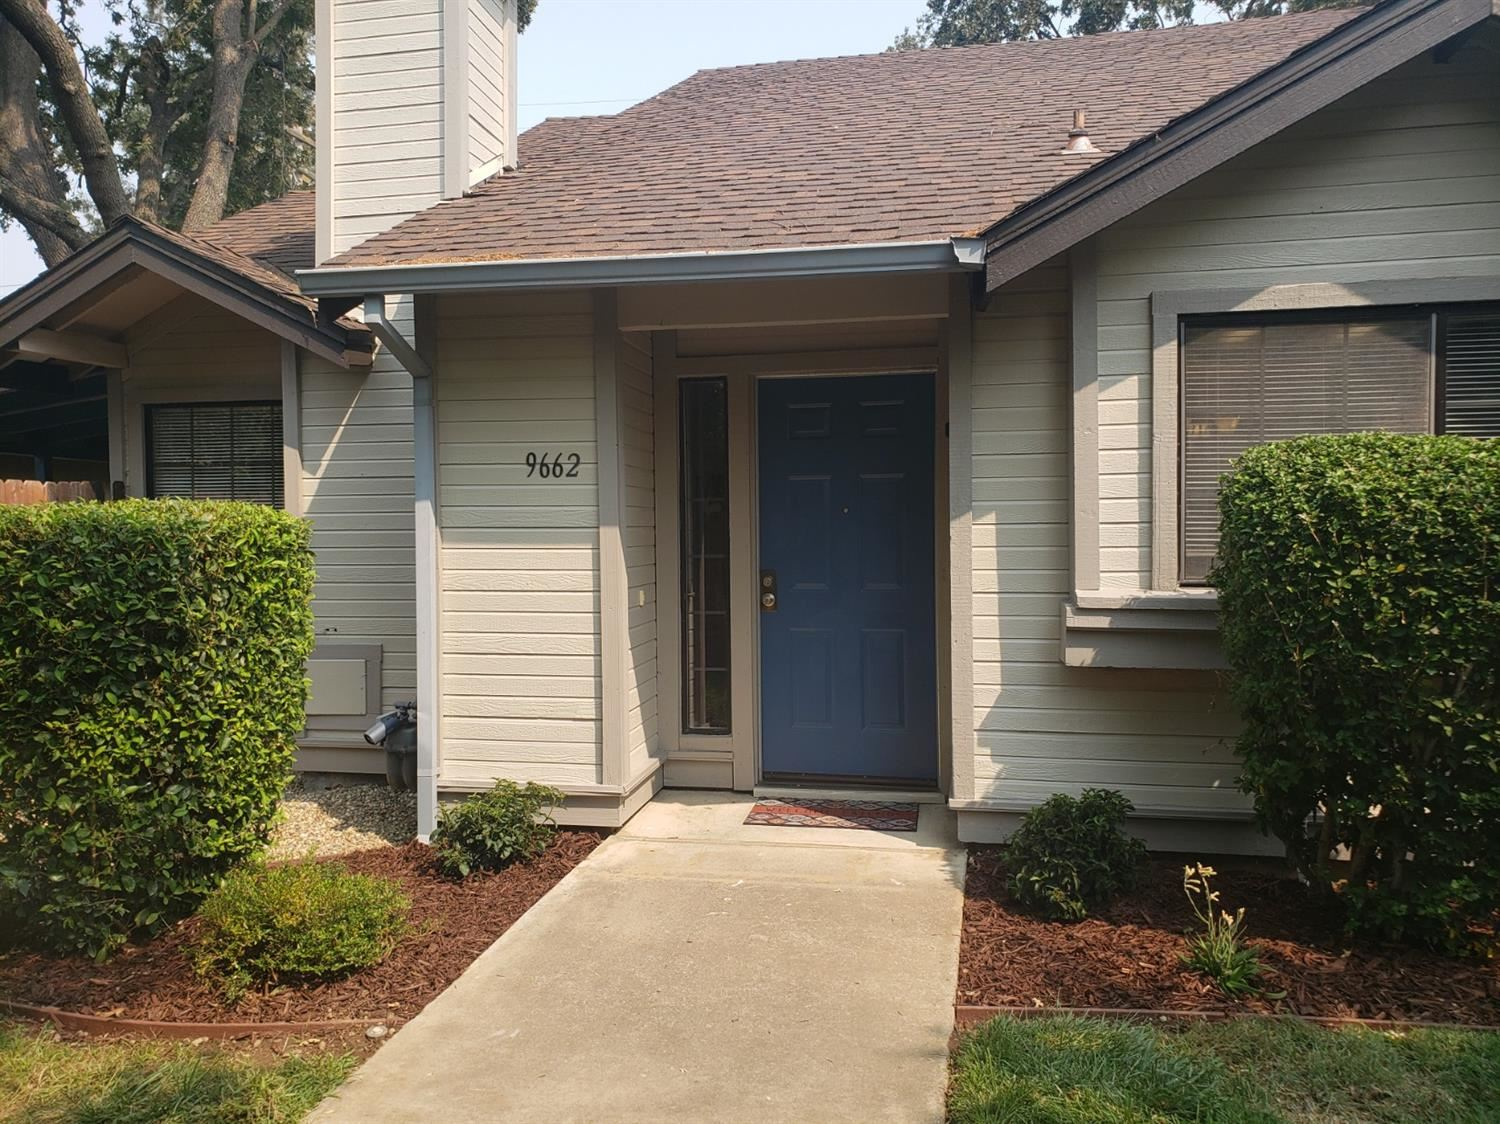 Photo of 9662 Gage Street, Elk Grove, CA 95624 (MLS # 221037288)